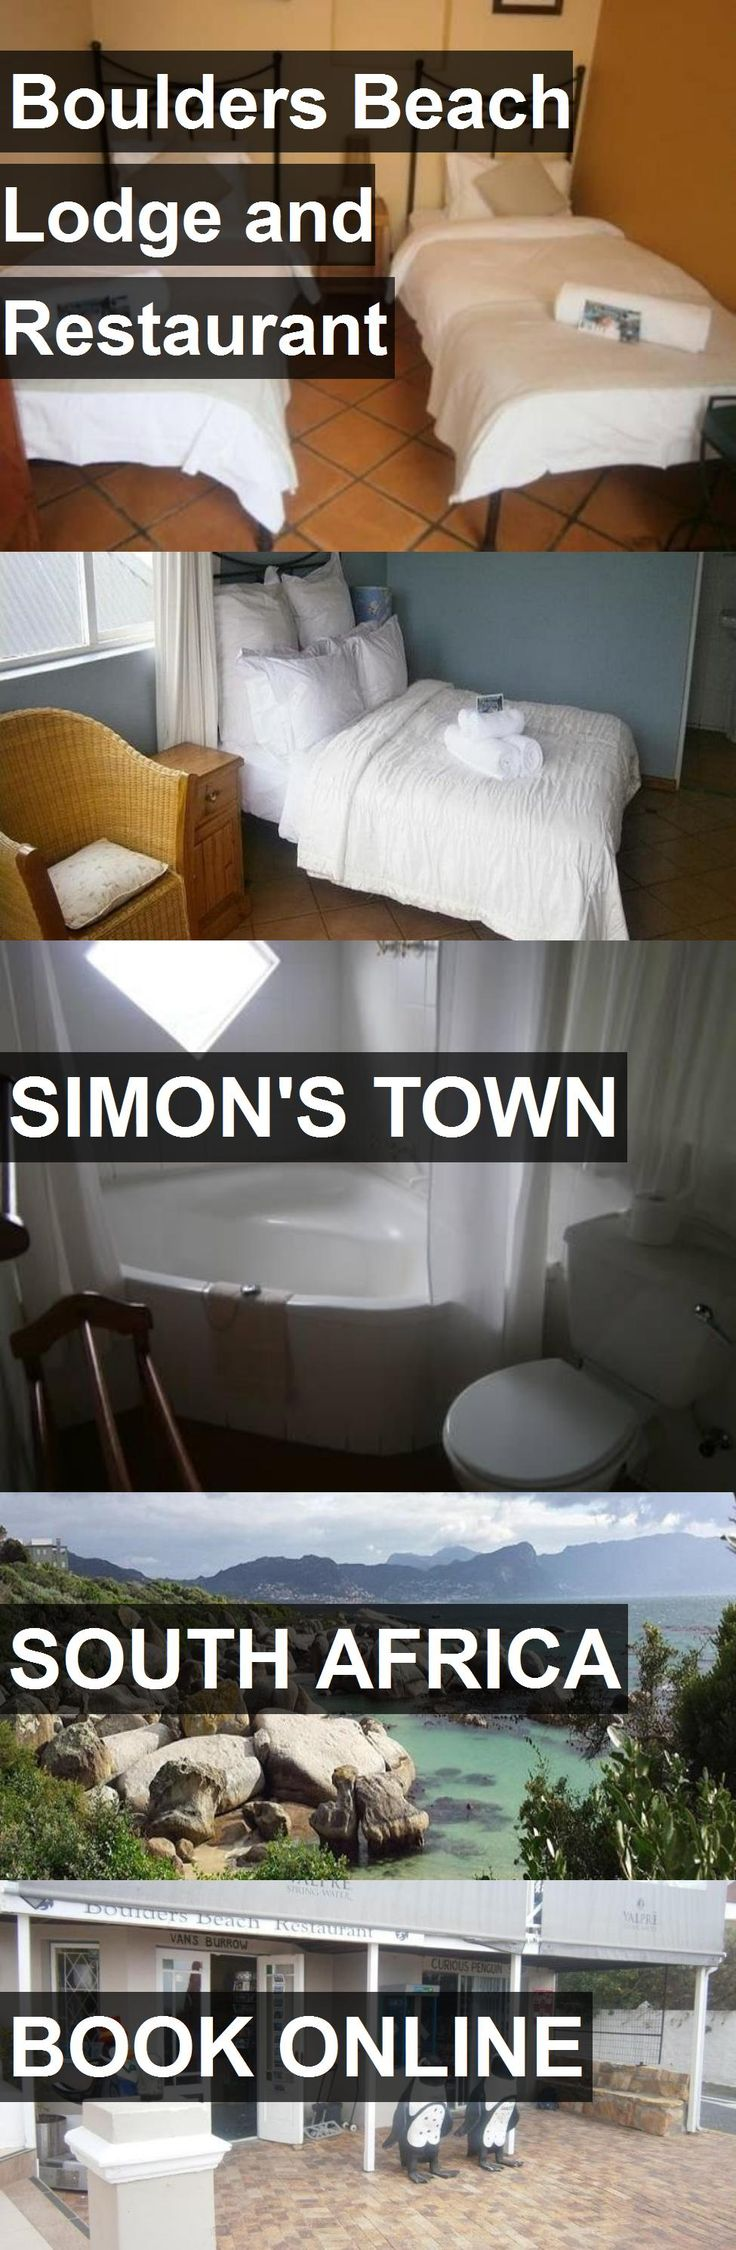 Hotel Boulders Beach Lodge and Restaurant in Simon's Town, South Africa. For more information, photos, reviews and best prices please follow the link. #SouthAfrica #Simon'sTown #travel #vacation #hotel